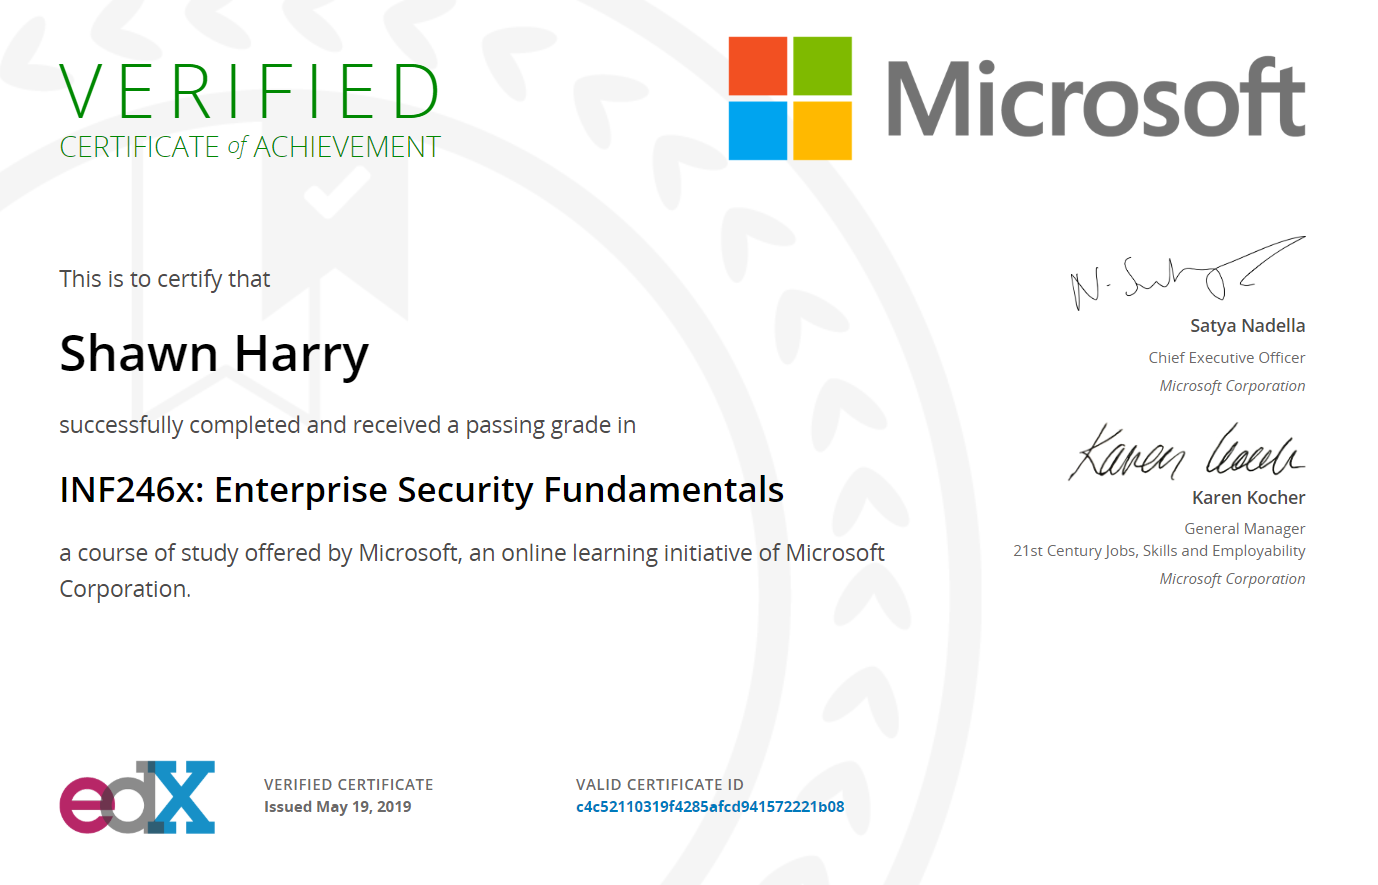 Microsoft Enterprise Security Fundamentals